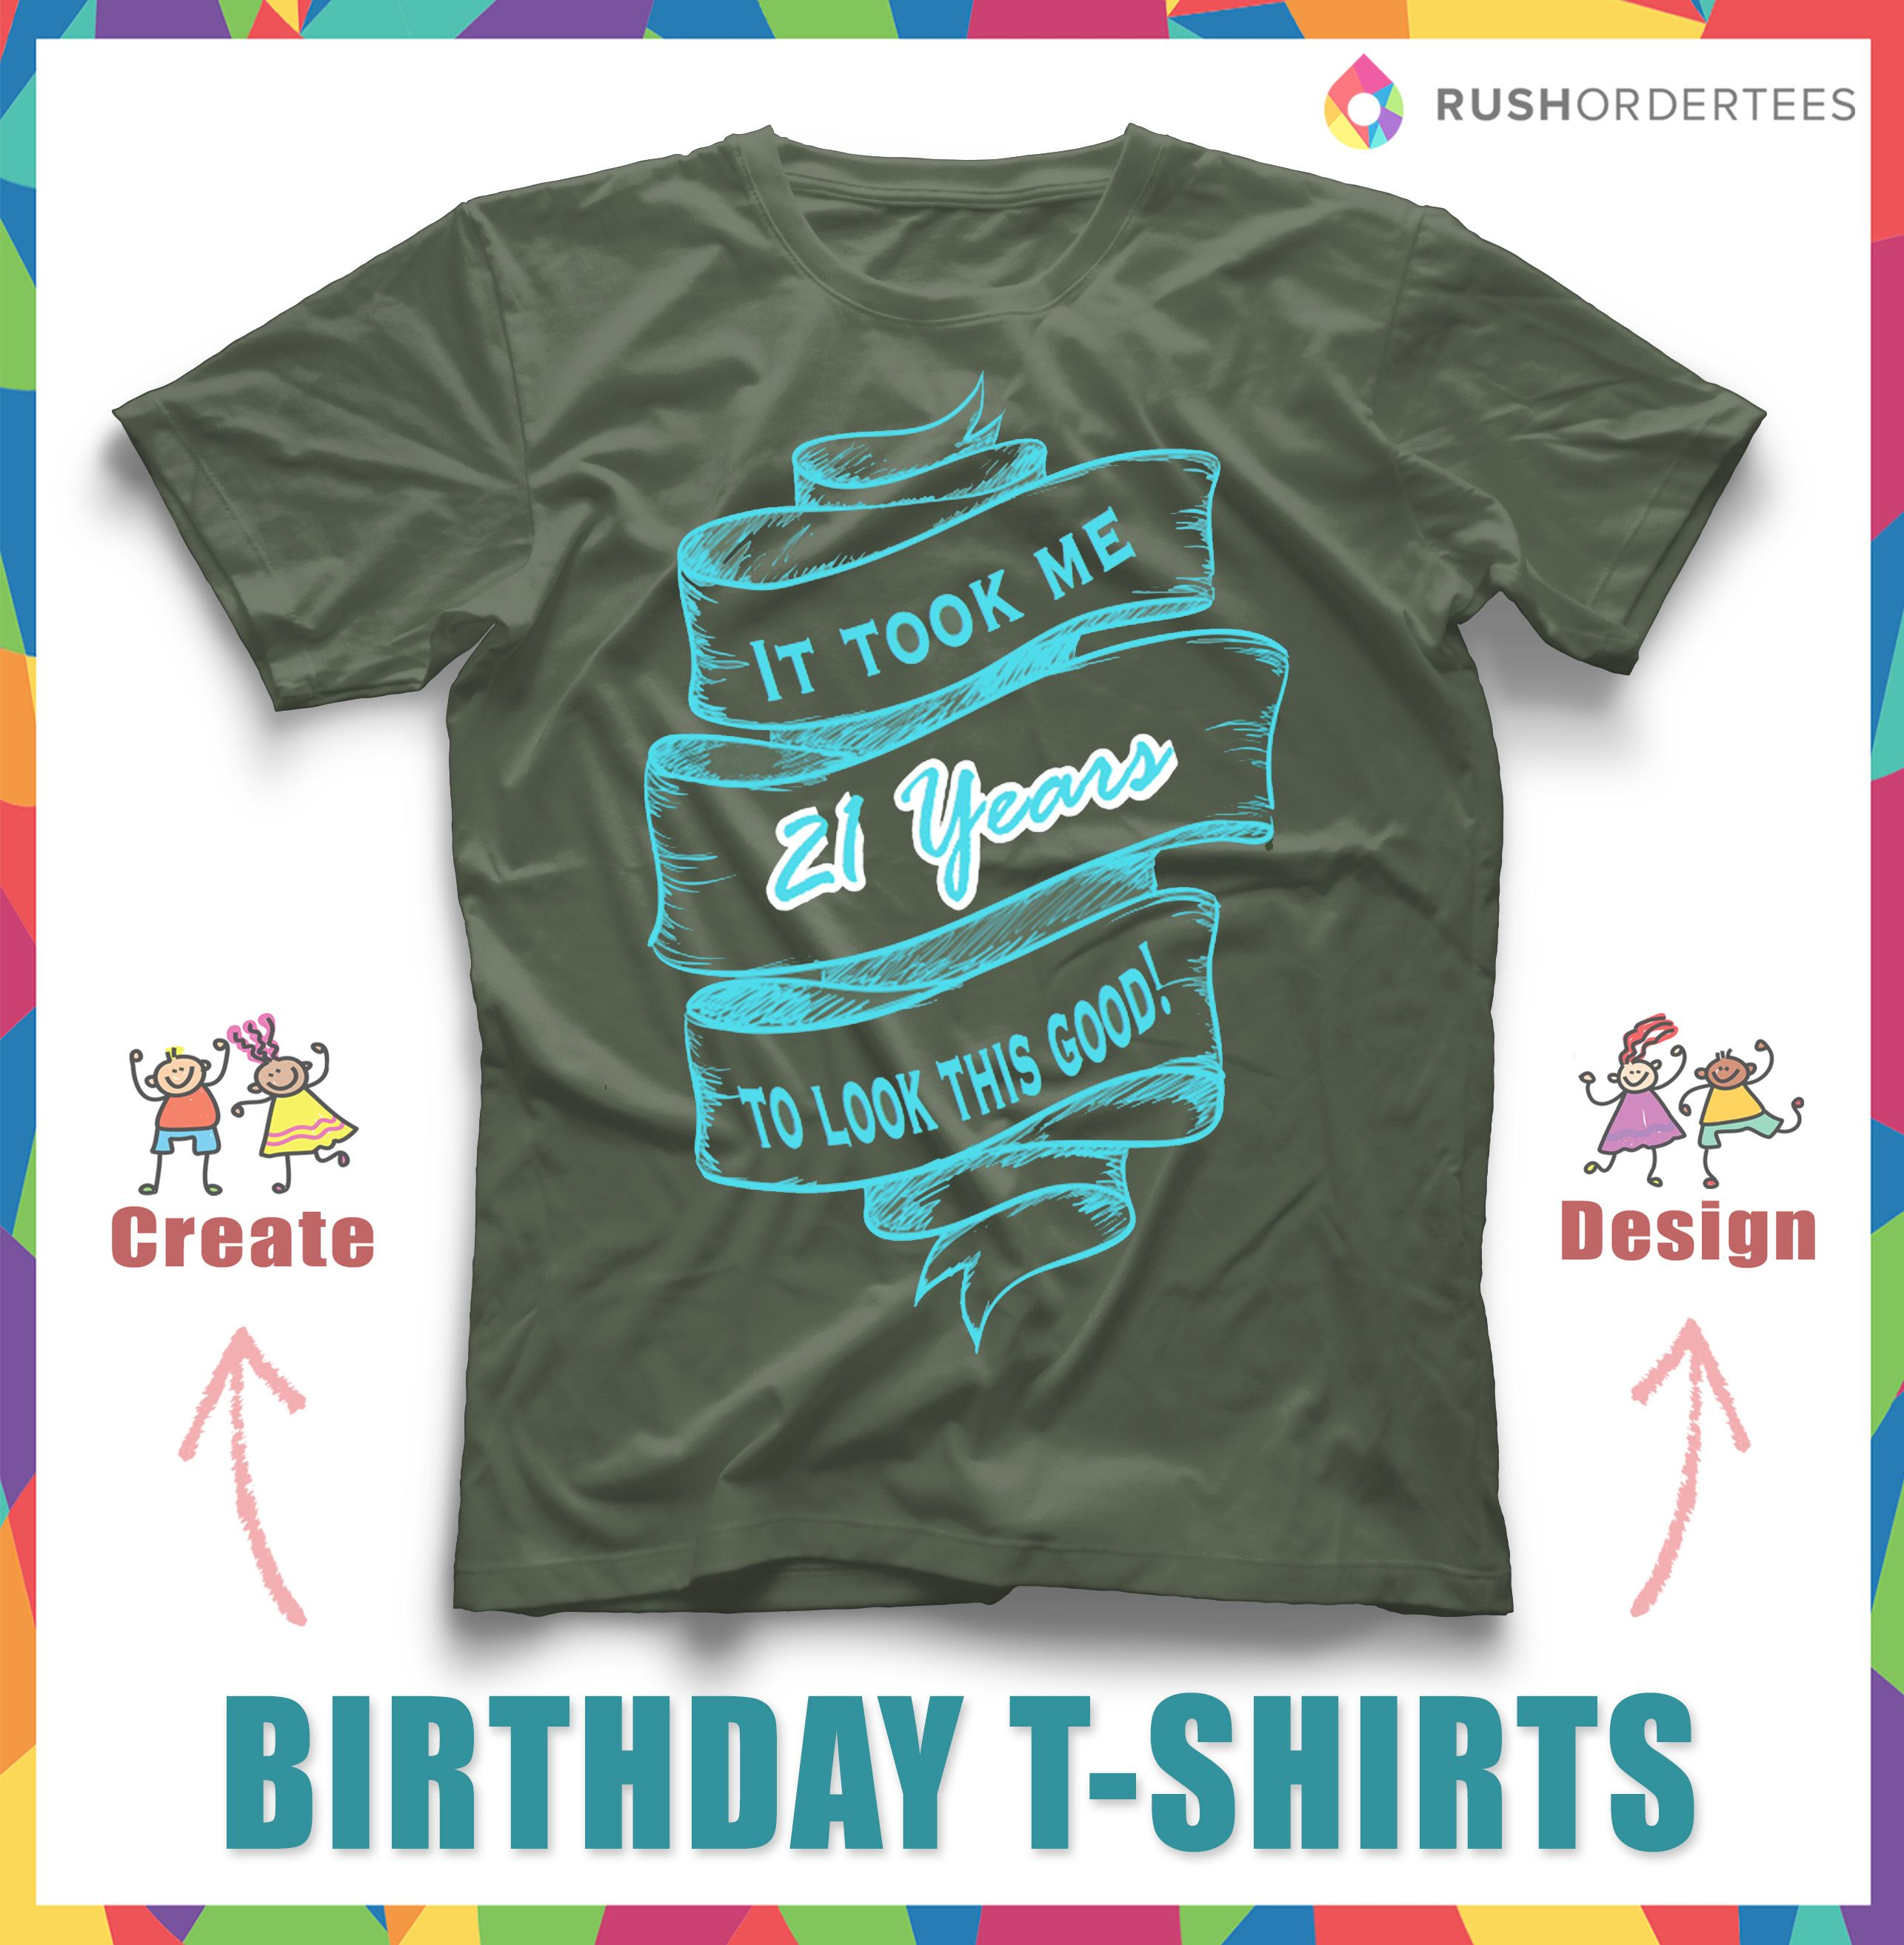 Design tshirt online free shipping - Find More Birthday T Shirt Designs In Our T Shirt Design Idea S Board Your Idea In Our Easy To Use Online Design Studio